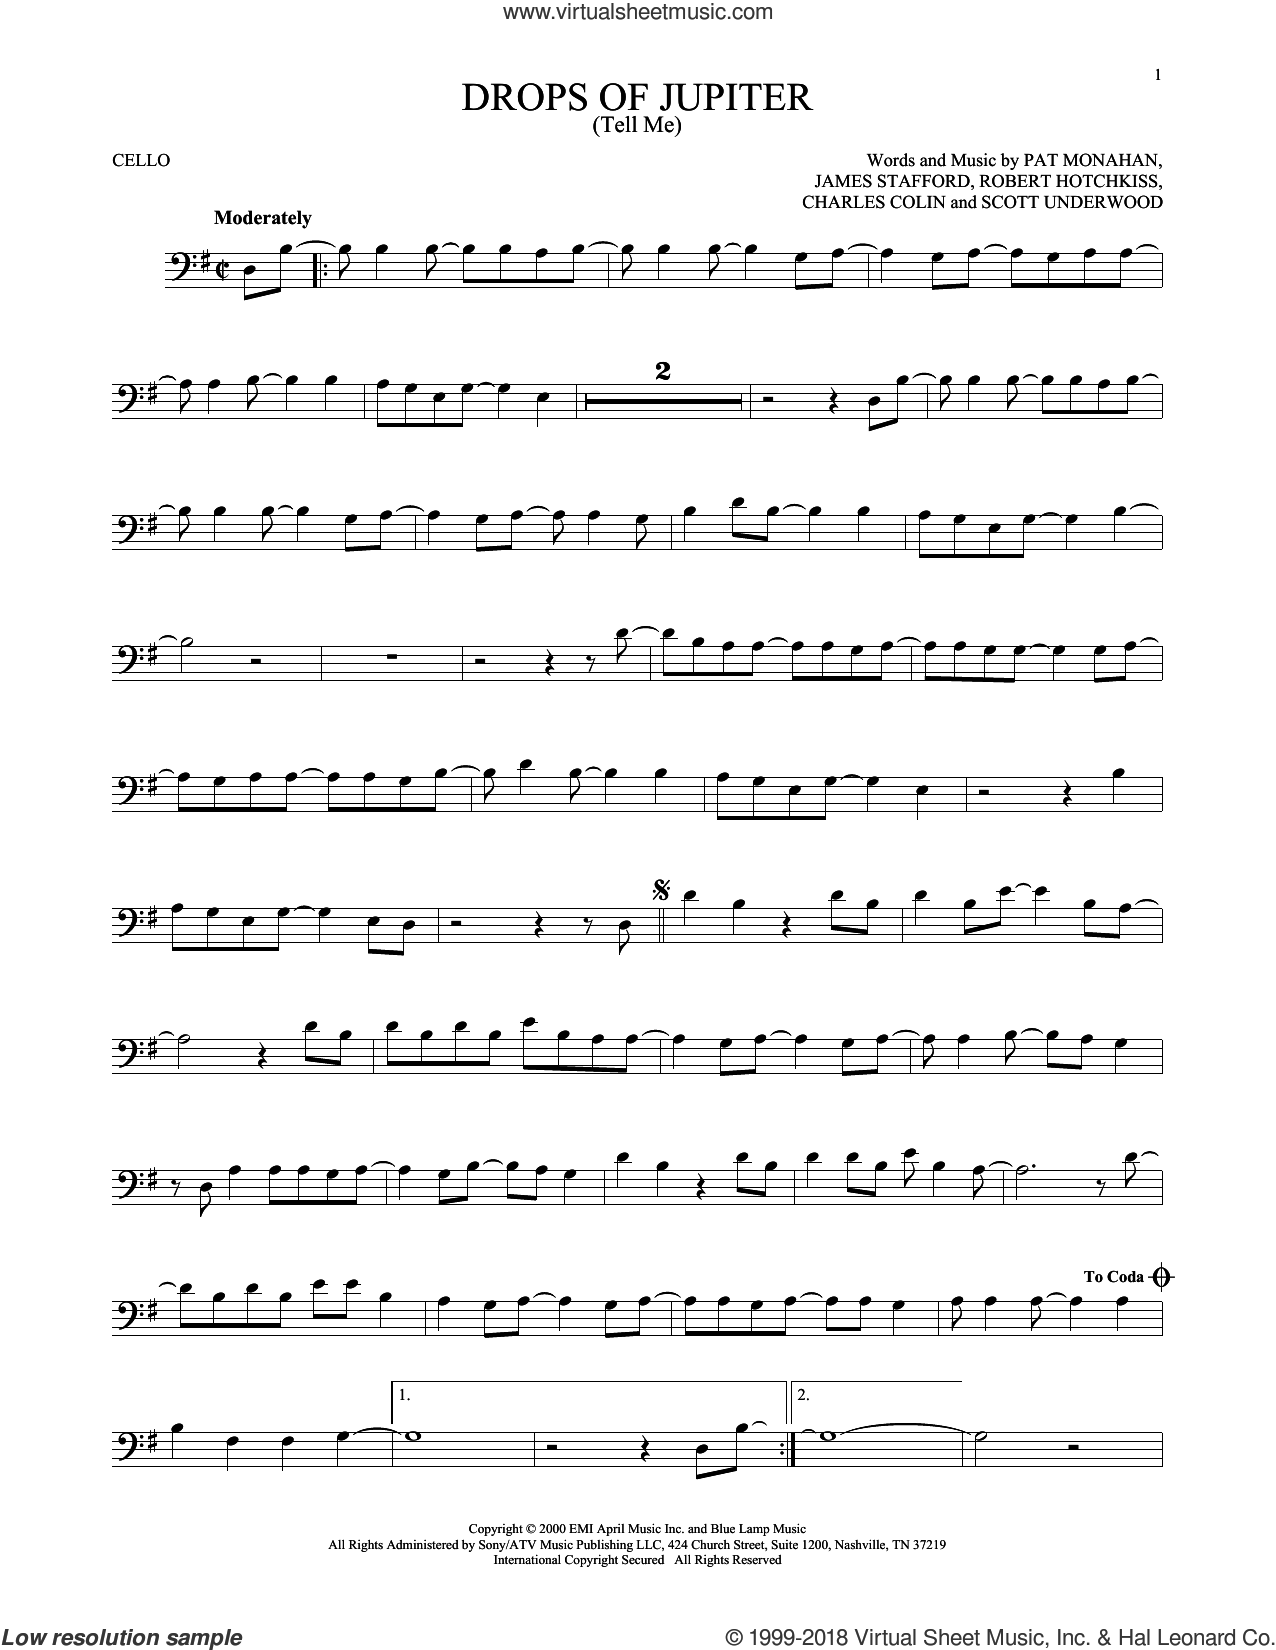 Drops Of Jupiter (Tell Me) sheet music for cello solo by Train, Charles Colin, James Stafford, Pat Monahan, Robert Hotchkiss and Scott Underwood, intermediate skill level